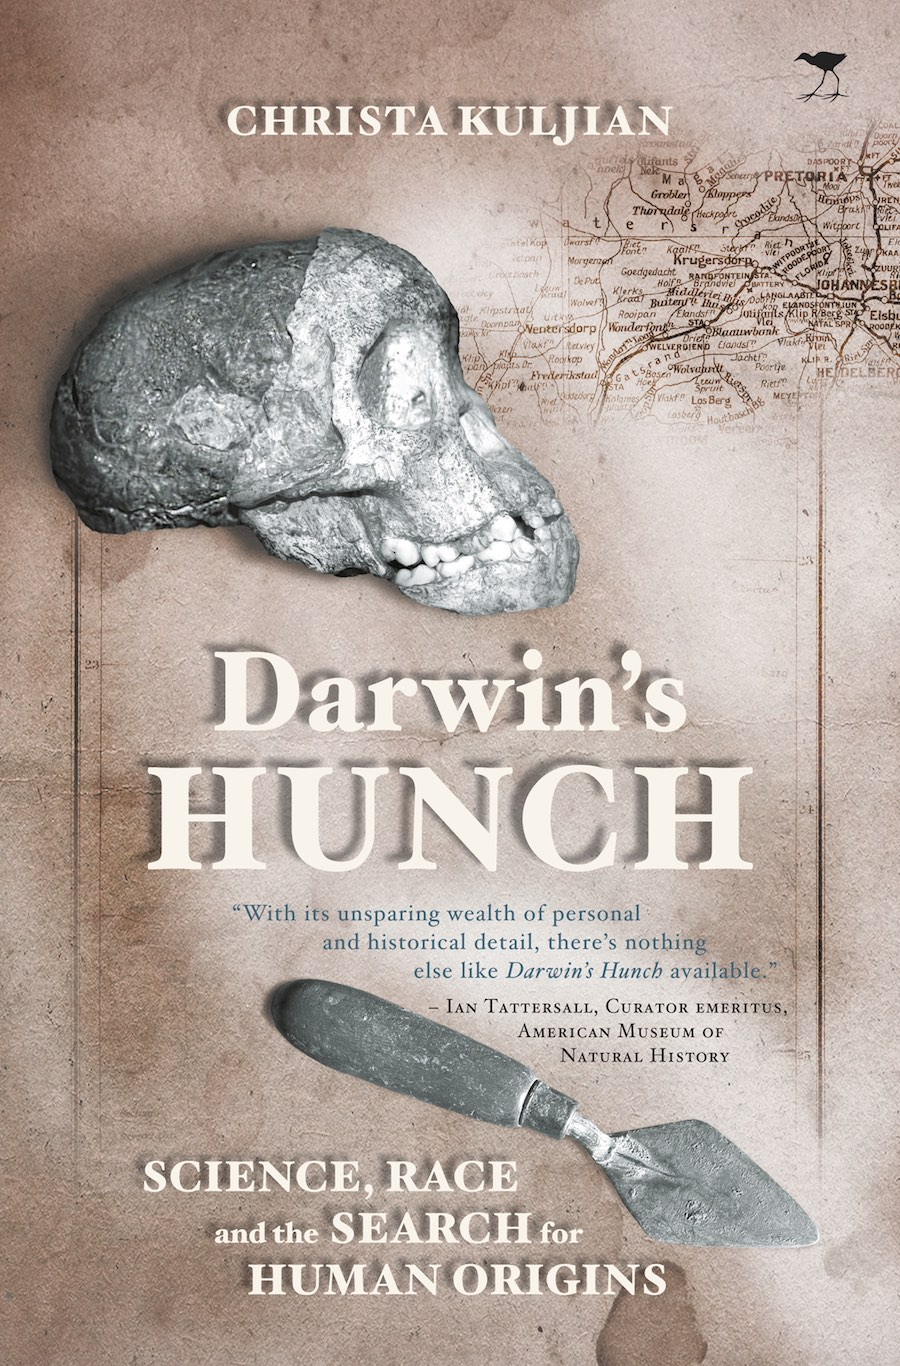 The Book Revue - Darwins hunch